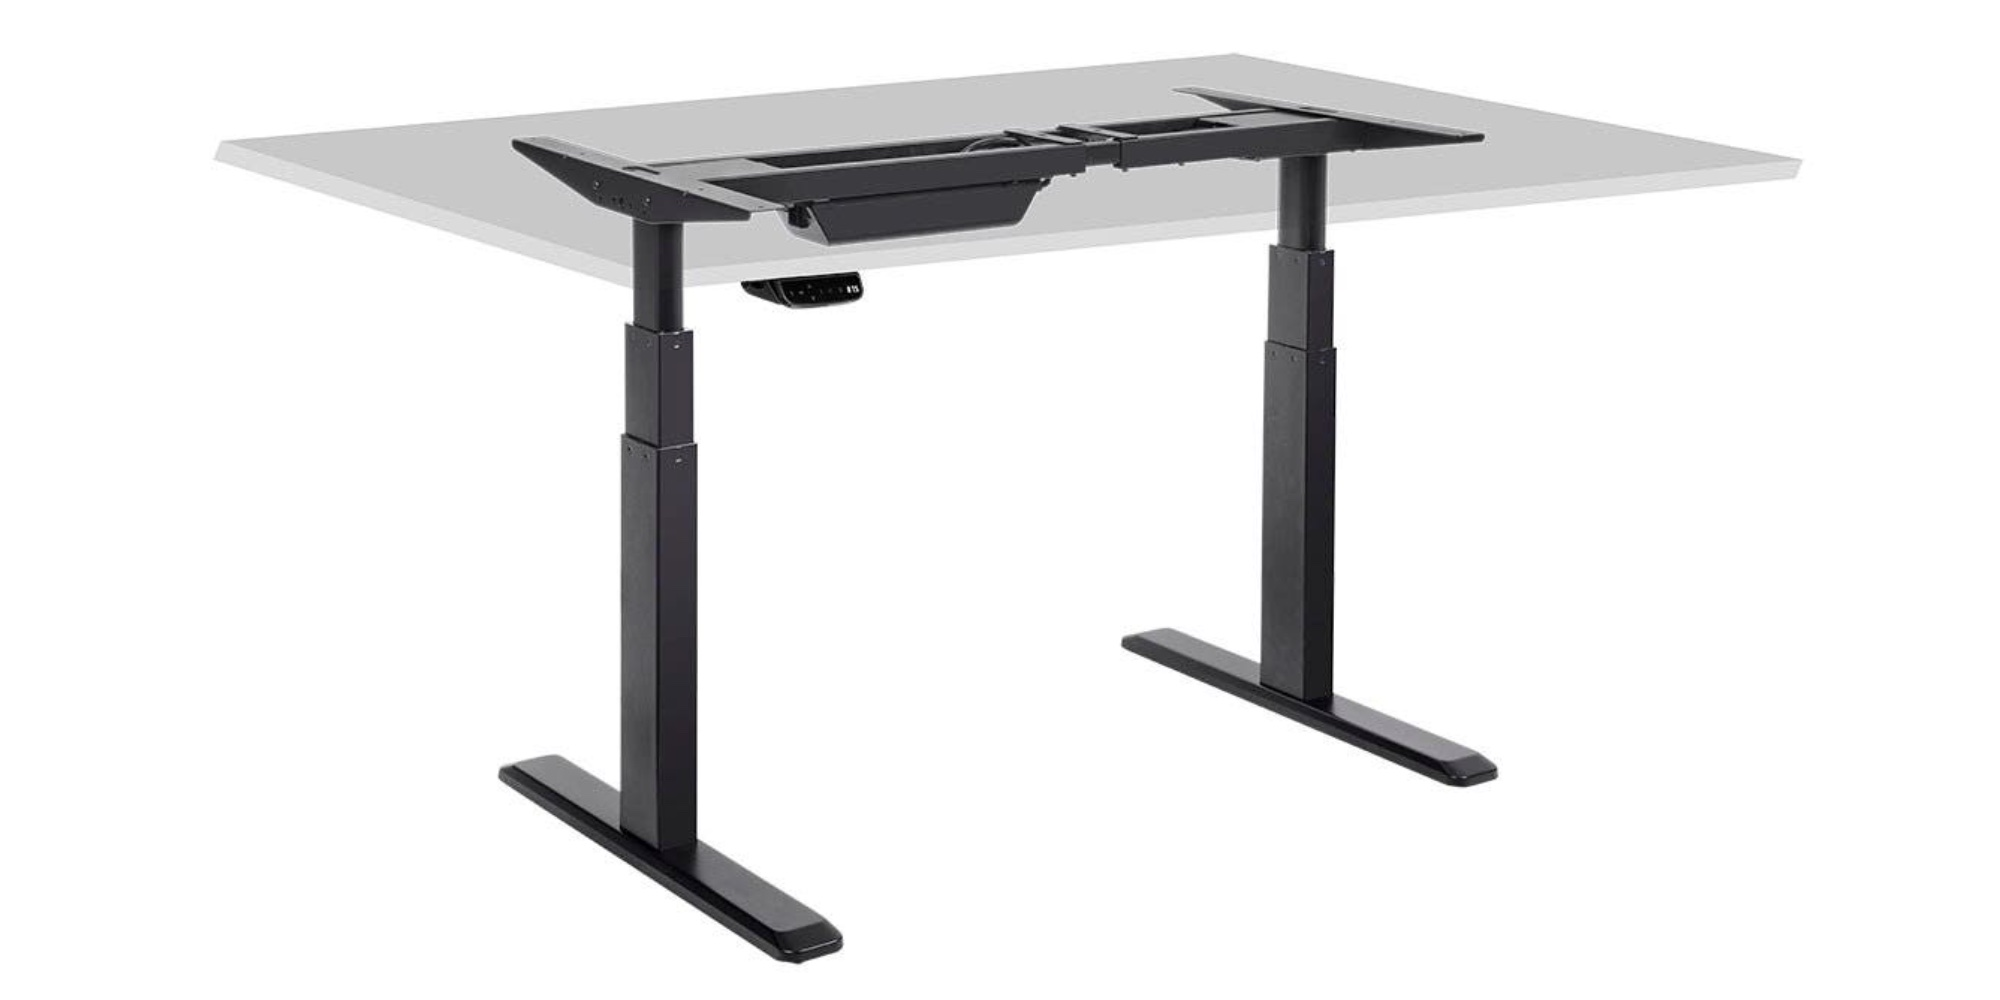 Save On Motorized Standing Desks Ultrawide Monitors More In Monoprice S Back Friday Sale 9to5toys